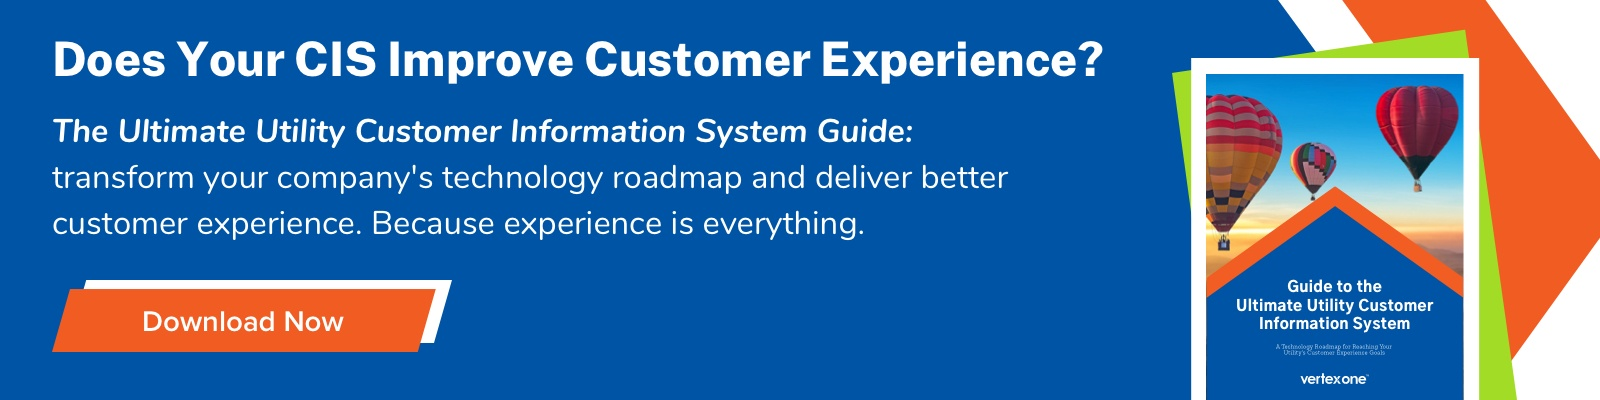 Download the Ultimate Customer Information System Guide to reach your utility's customer experience goals